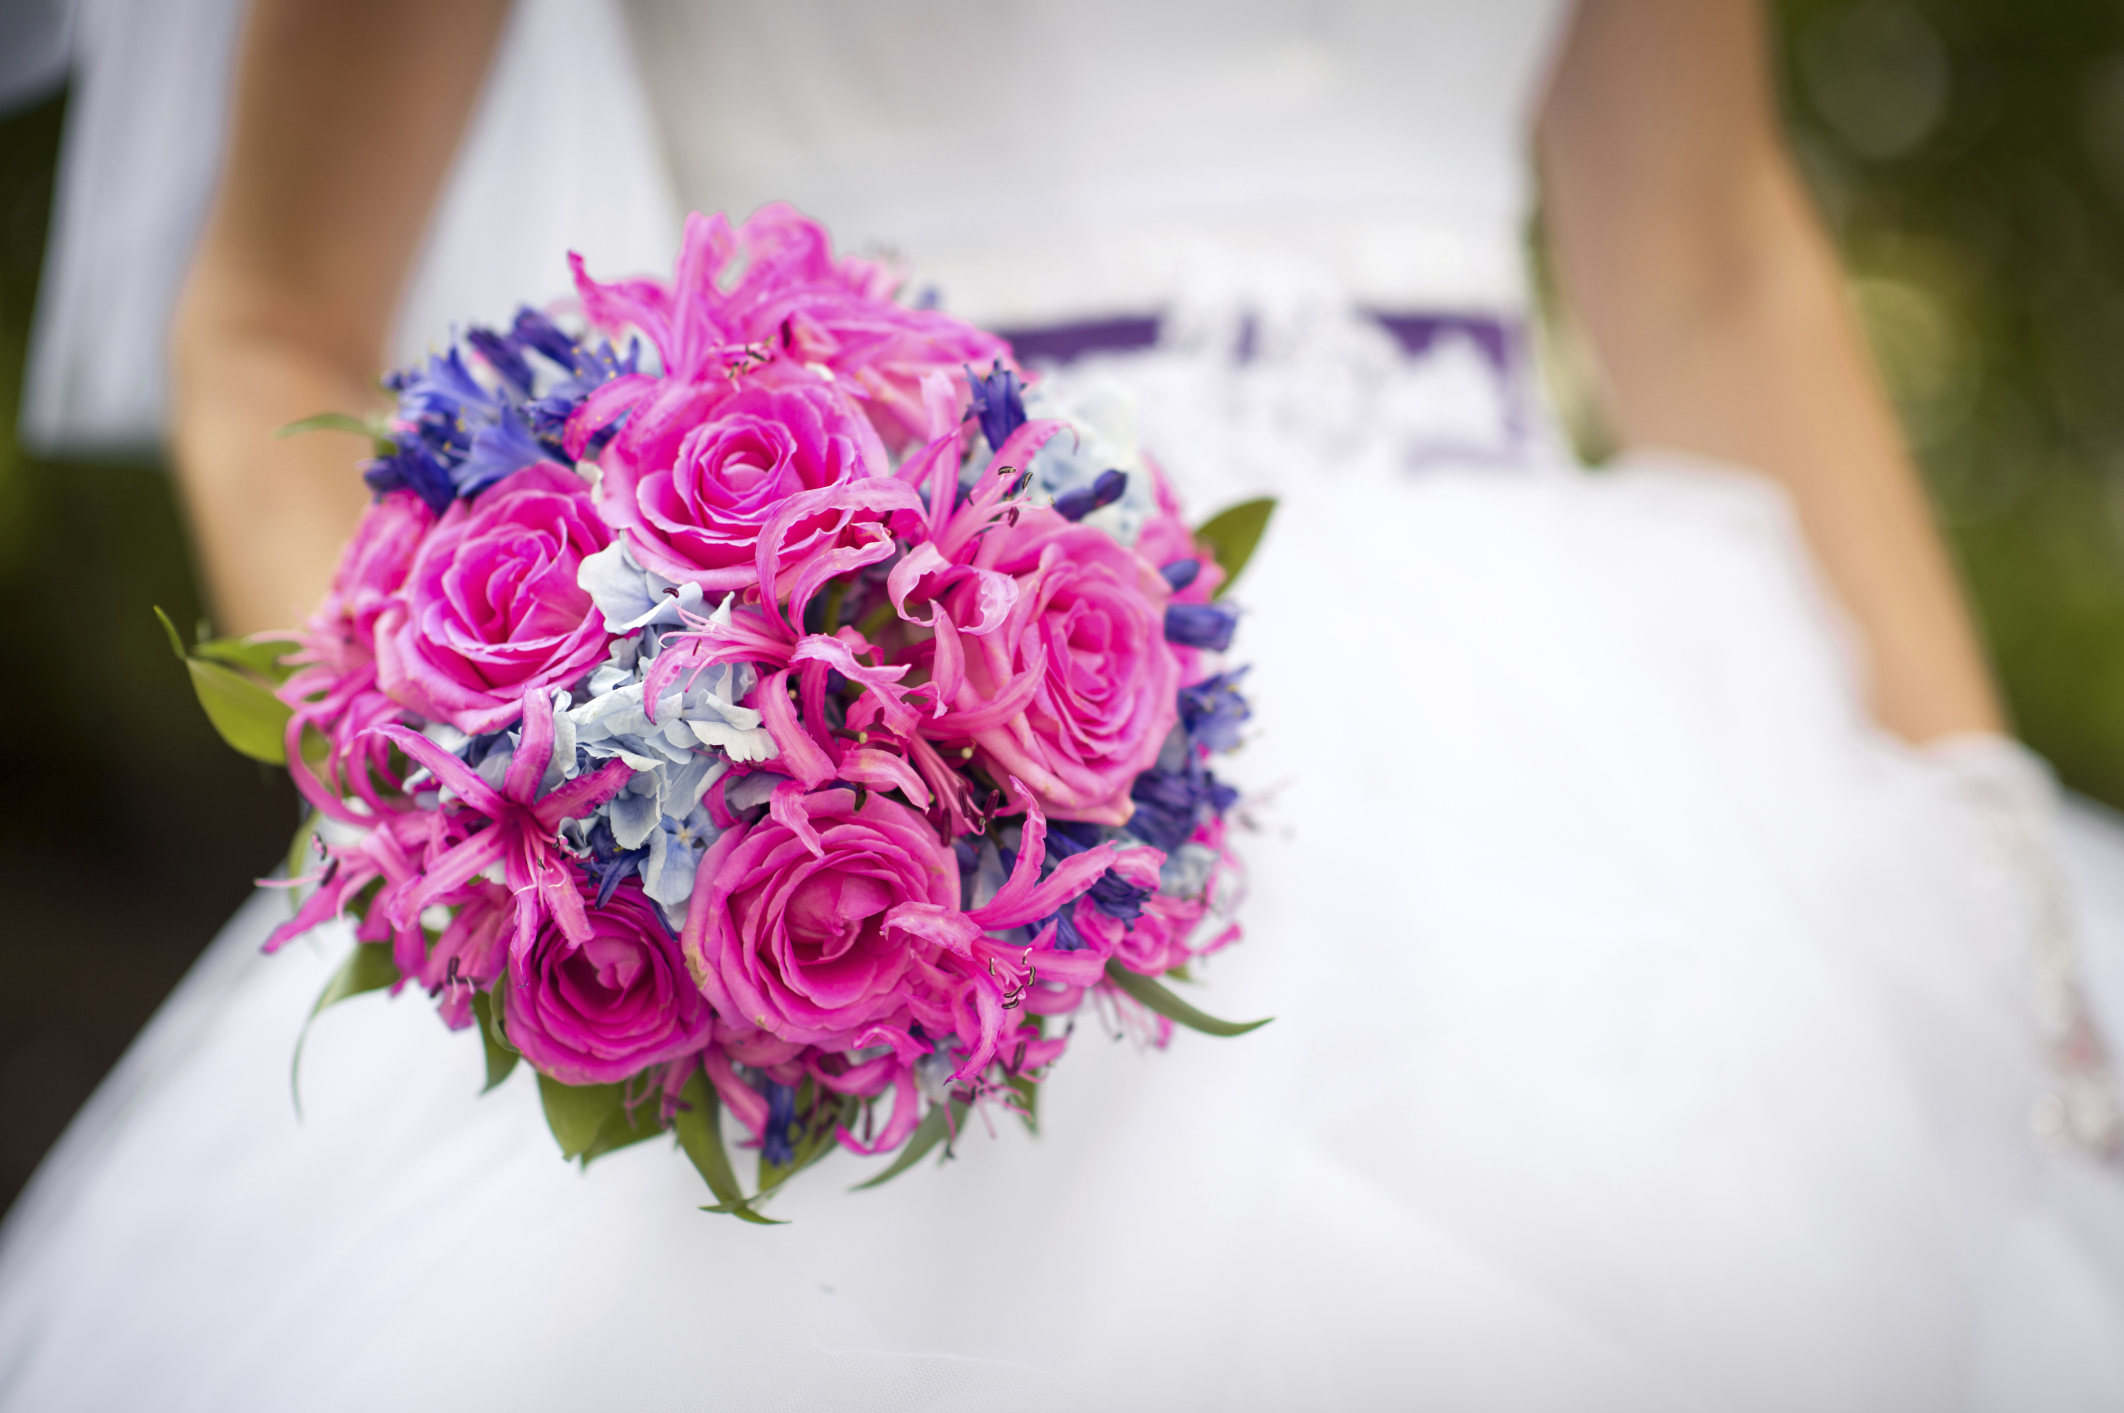 Wedding bouquets articles easy weddings wedding flowers izmirmasajfo